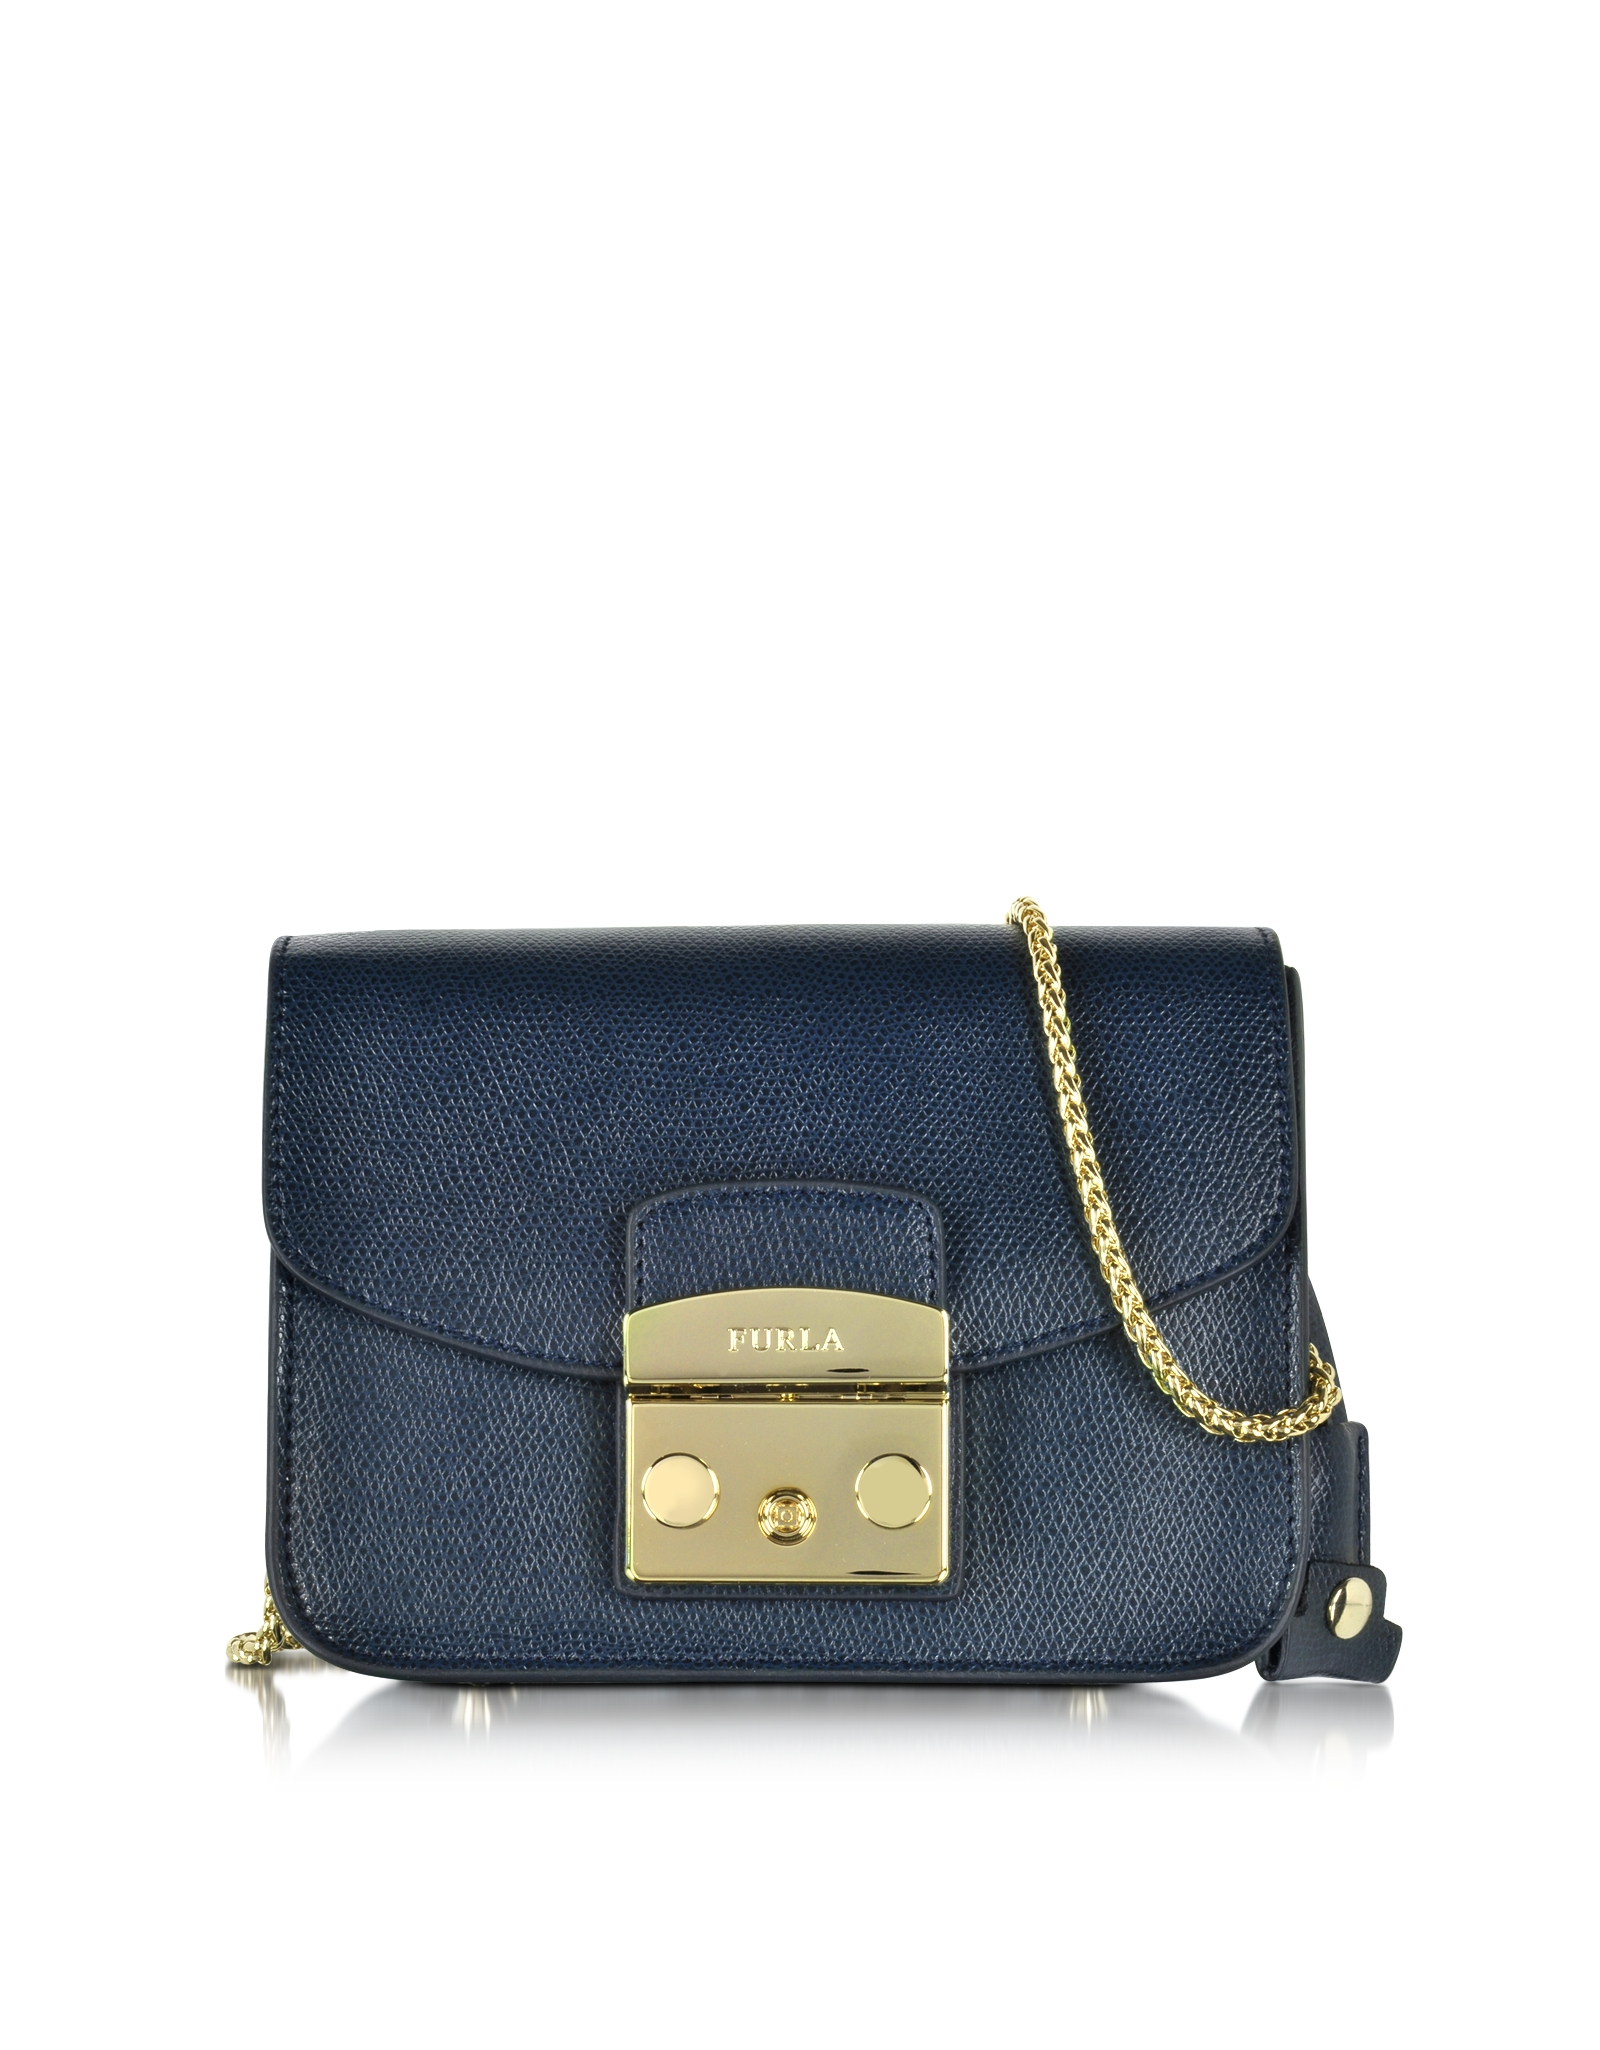 Furla Metropolis Navy Leather Shoulder Bag in Blue | Lyst